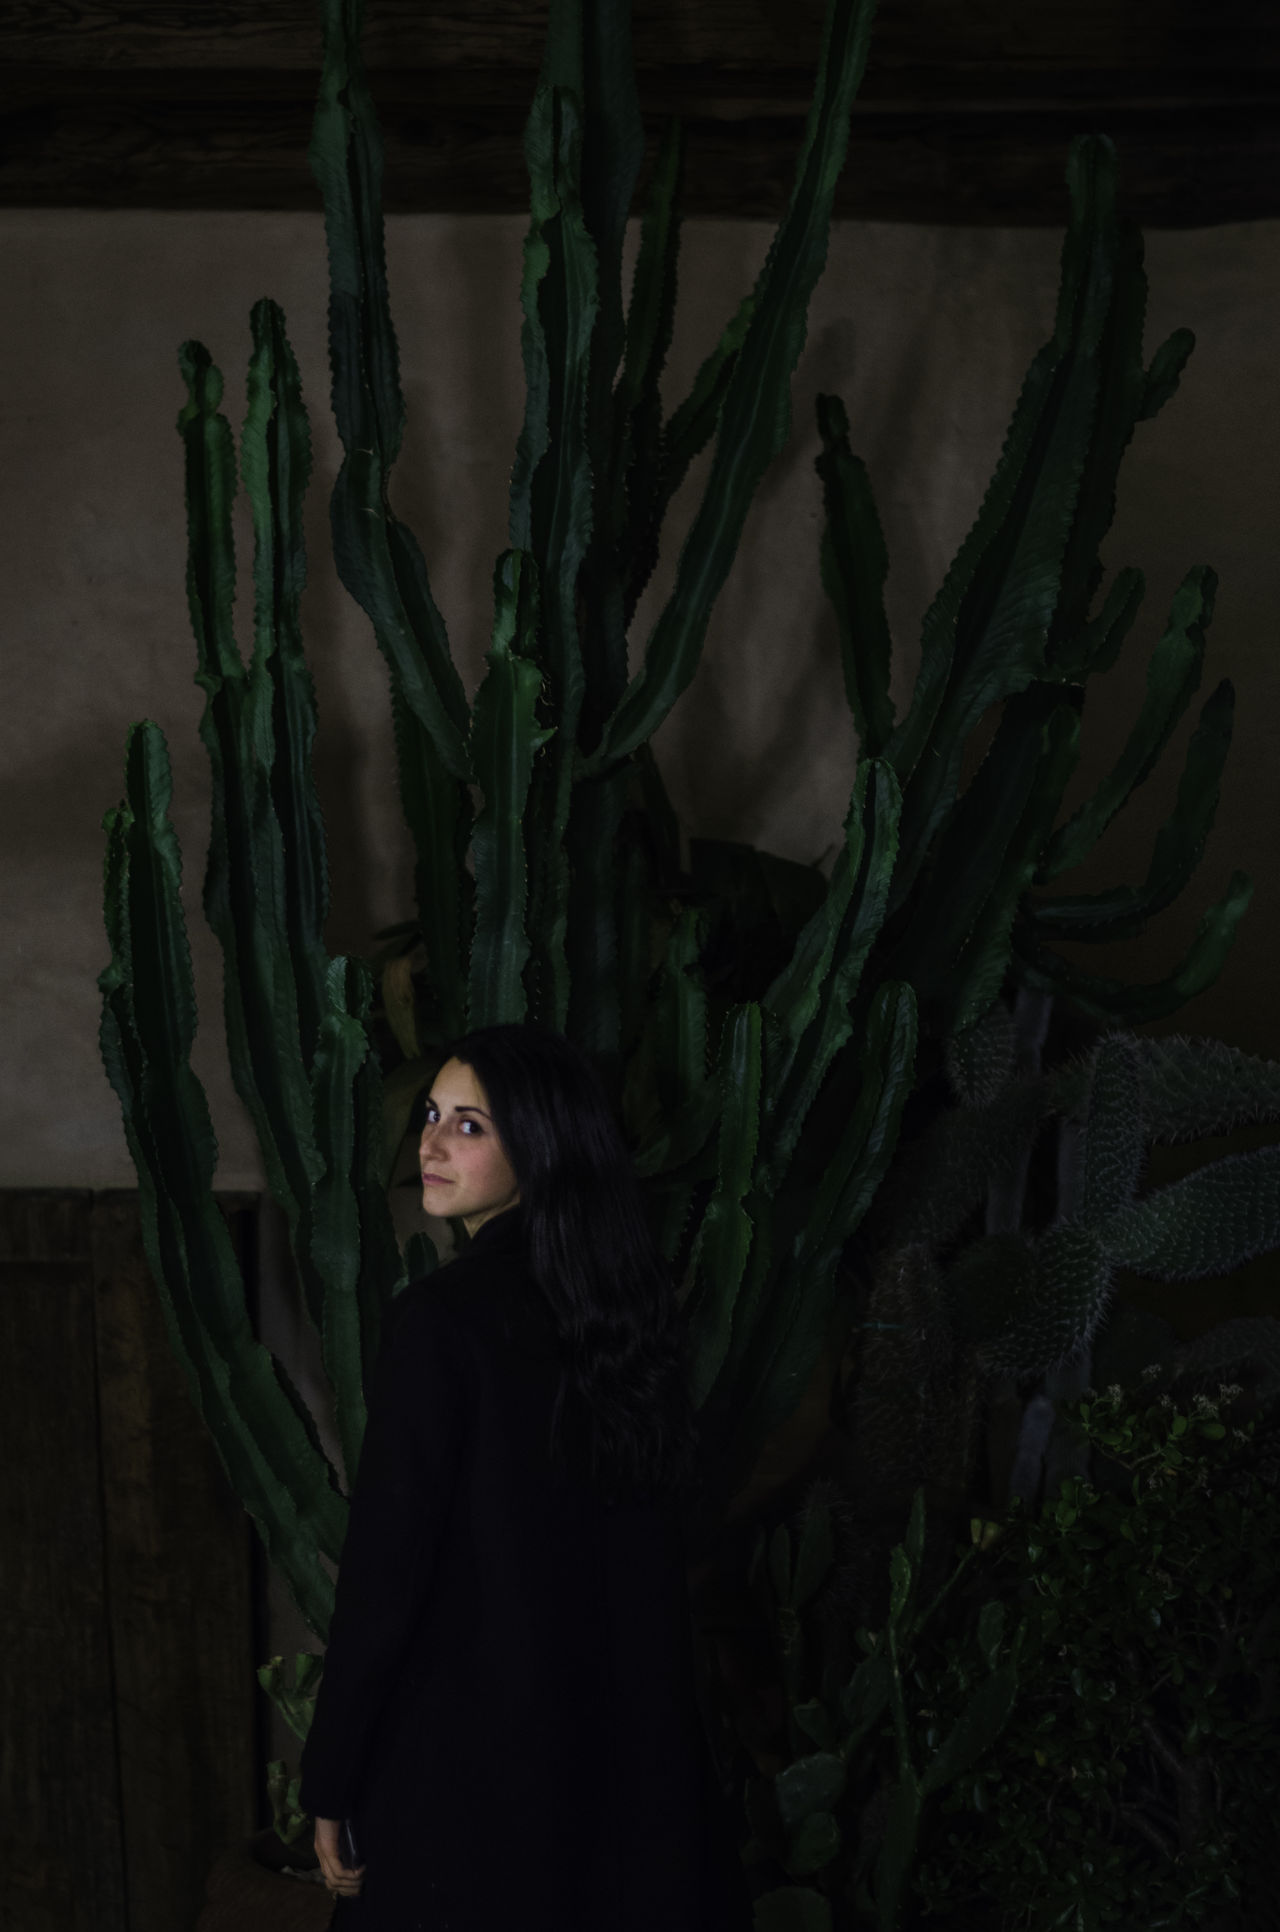 Cactaceae Adult Beautiful Woman Cactus Cactus Garden Females Green Color Indoors  One Person One Woman Only One Young Woman Only Only Women People Plant Portrait Profile Women Young Women